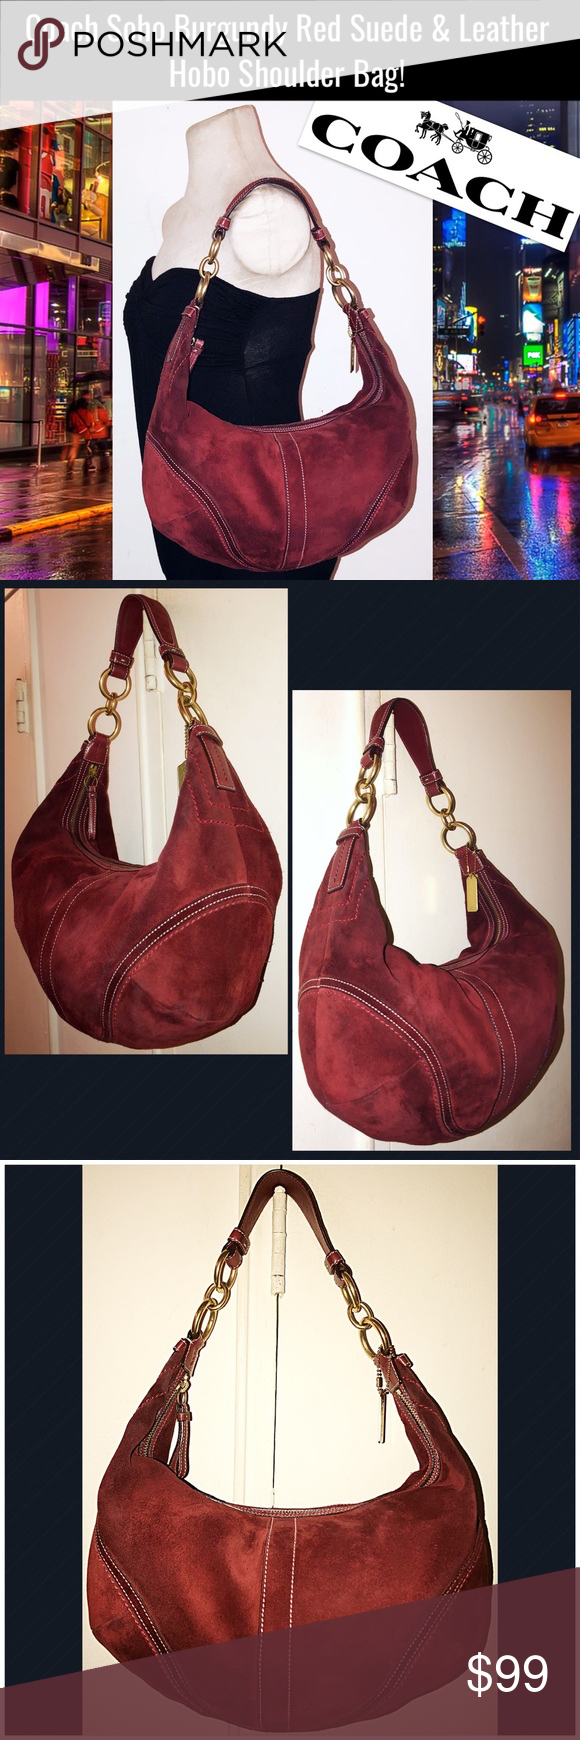 Coach Soho Burgundy Red Suede   Leather Hobo Bag! Coach Soho Burgundy Red  Suede   e3c7d1d541